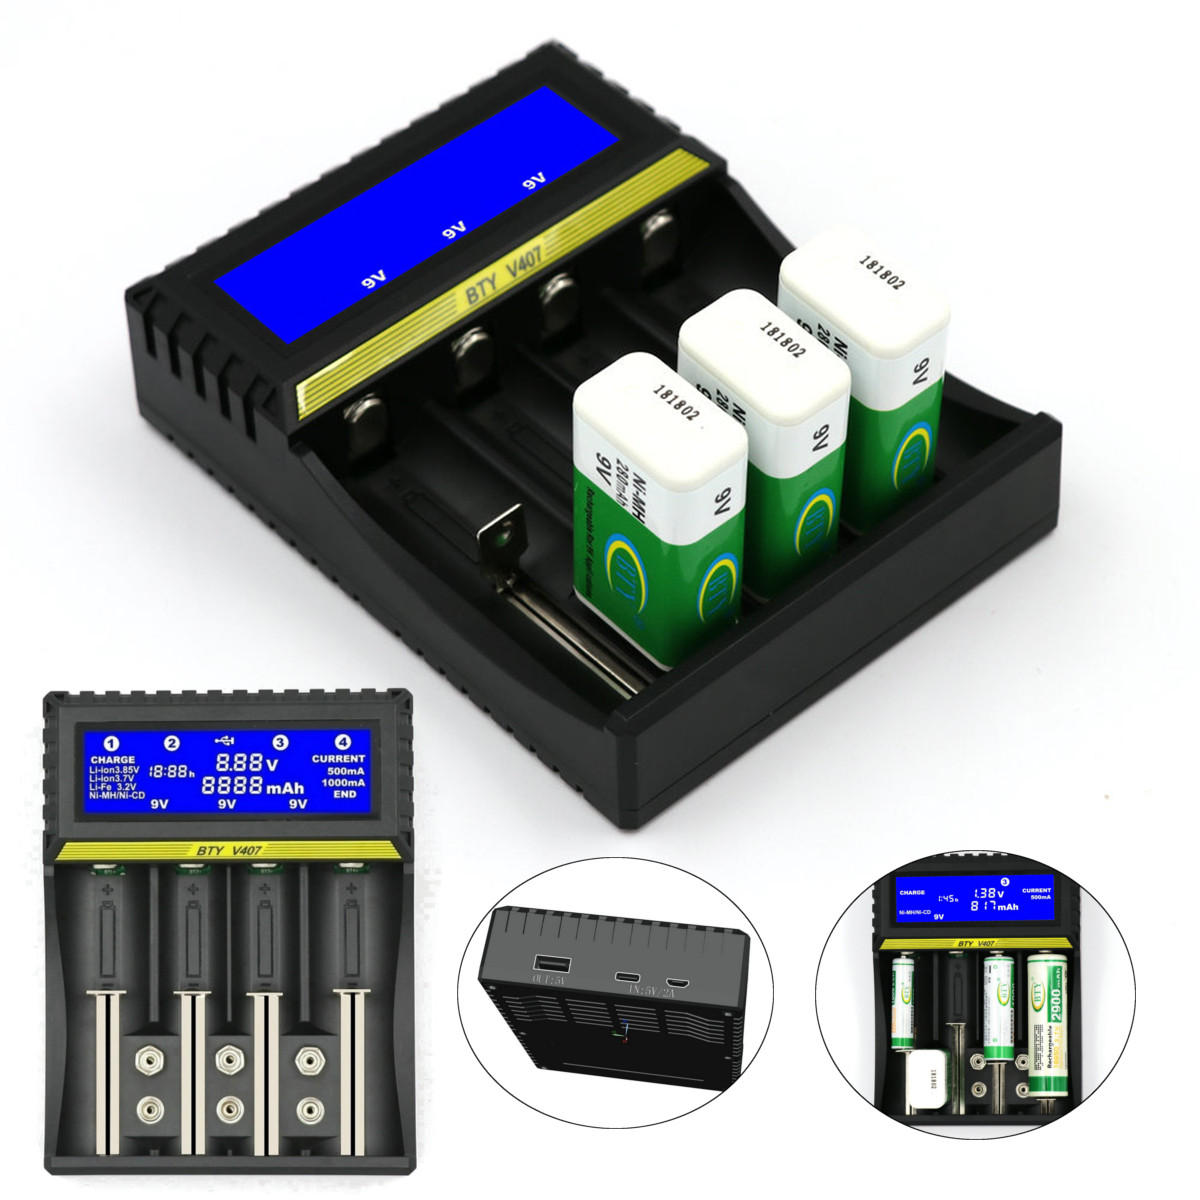 Universal Smart LCD Charger Multifuncation Lithium Battery Charger For 9V AA AAA Ni MH Ni CD 18650 Li ion Battery Charger lot - 7